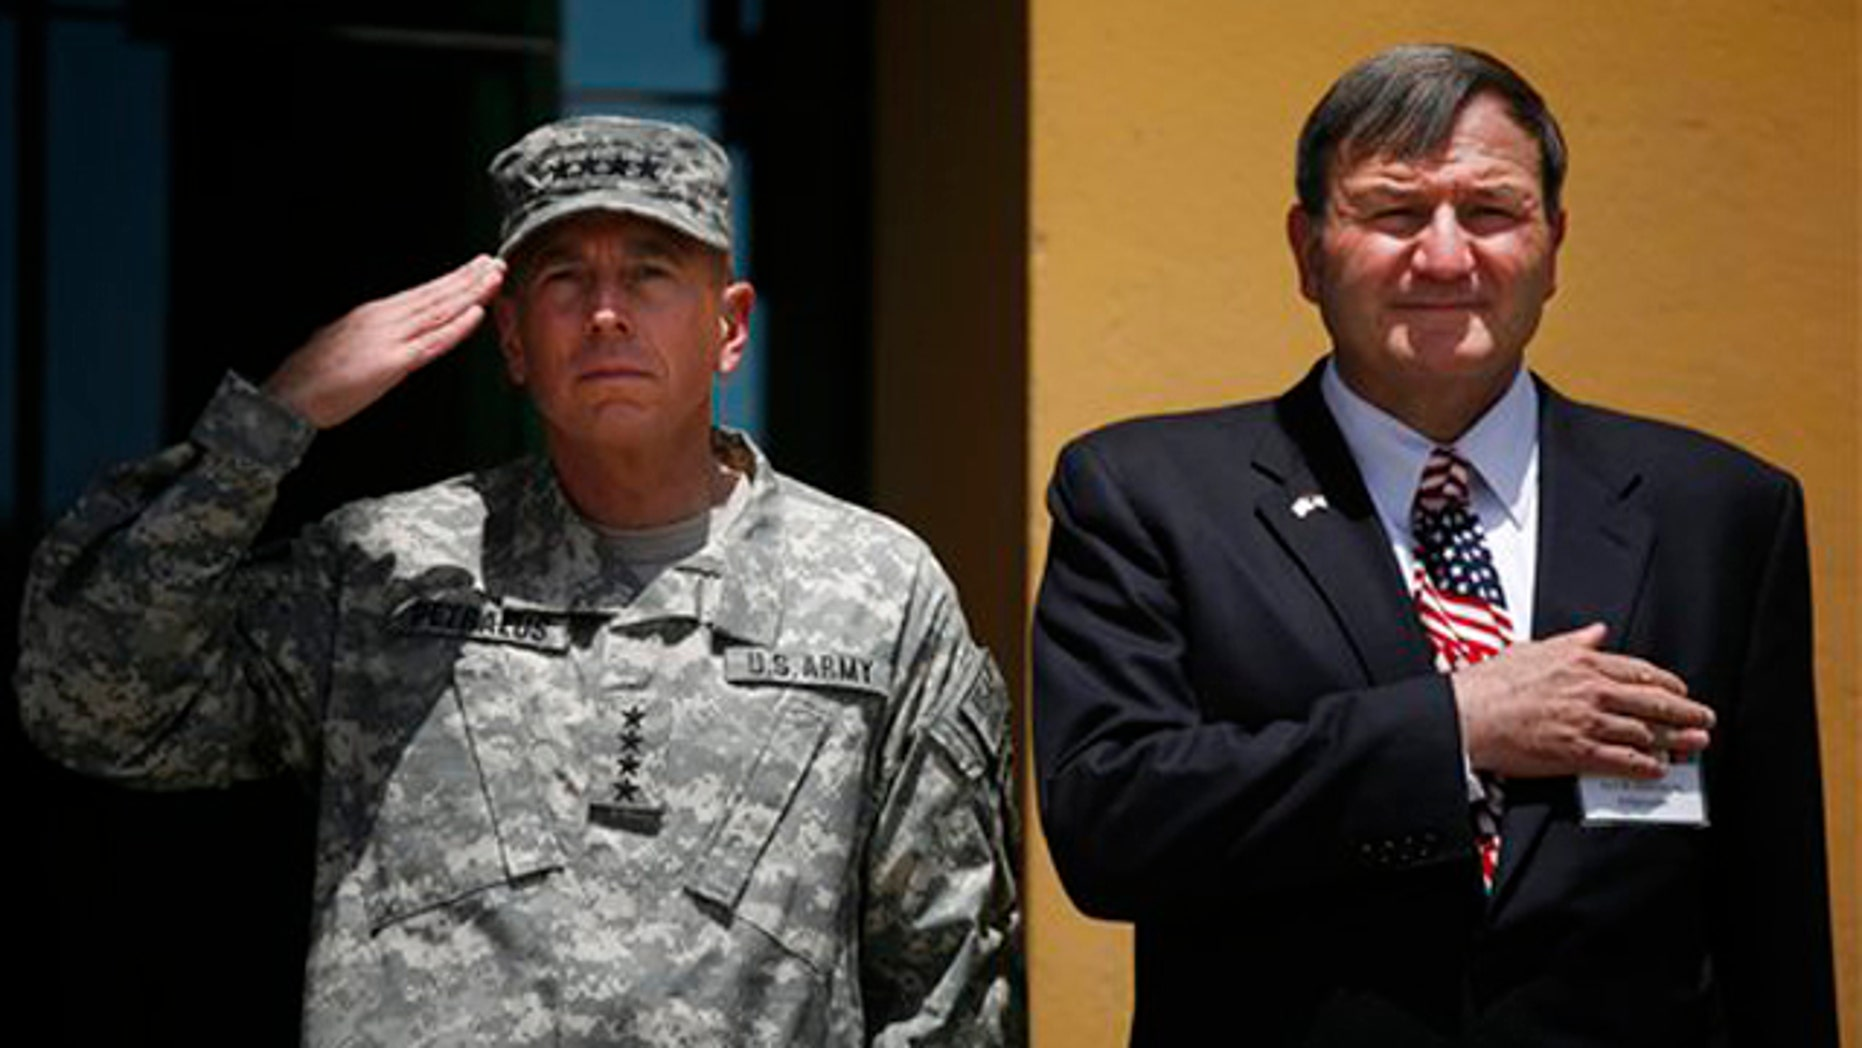 Gen. David Petraeus and U.S. Ambassador to Afghanistan Karl Eikenberry salute during the Independence Day celebrations July 3 in Kabul. (AP Photo)